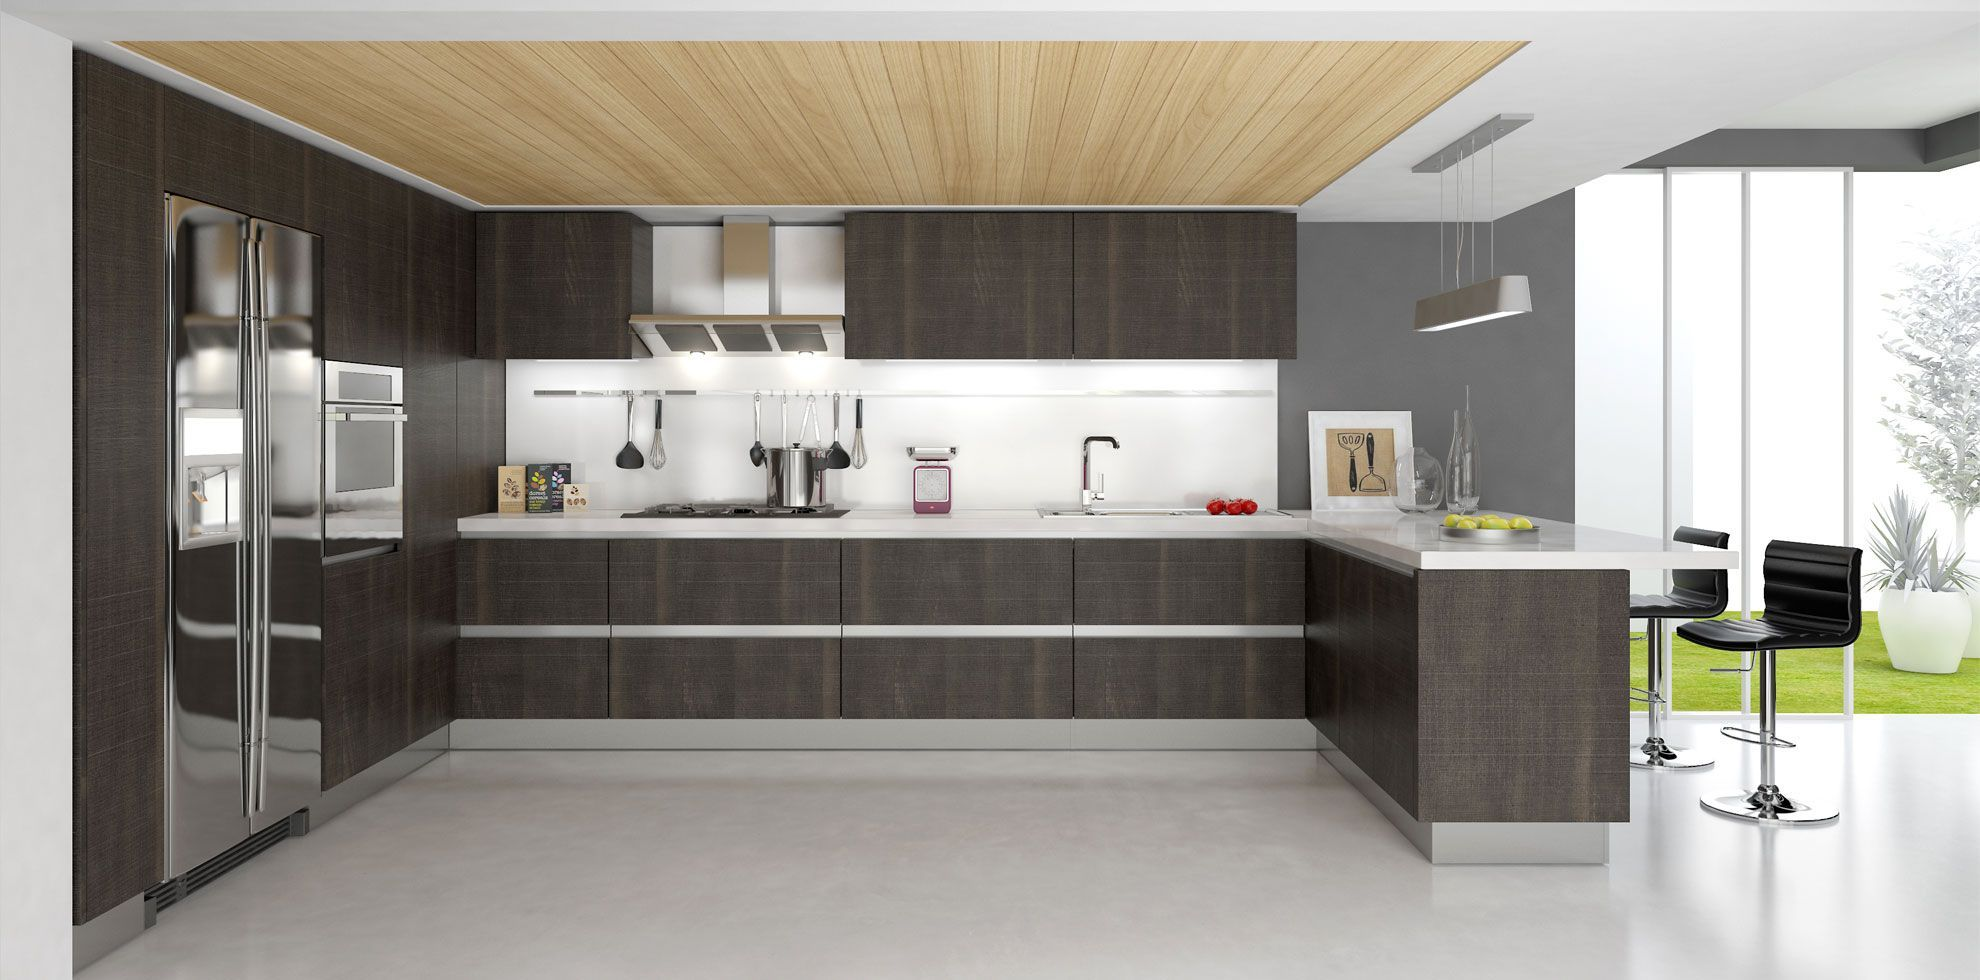 20 Prime Examples Of Modern Kitchen Cabinets Contemporary Kitchen Design Modern Kitchen Cabinet Design Modern